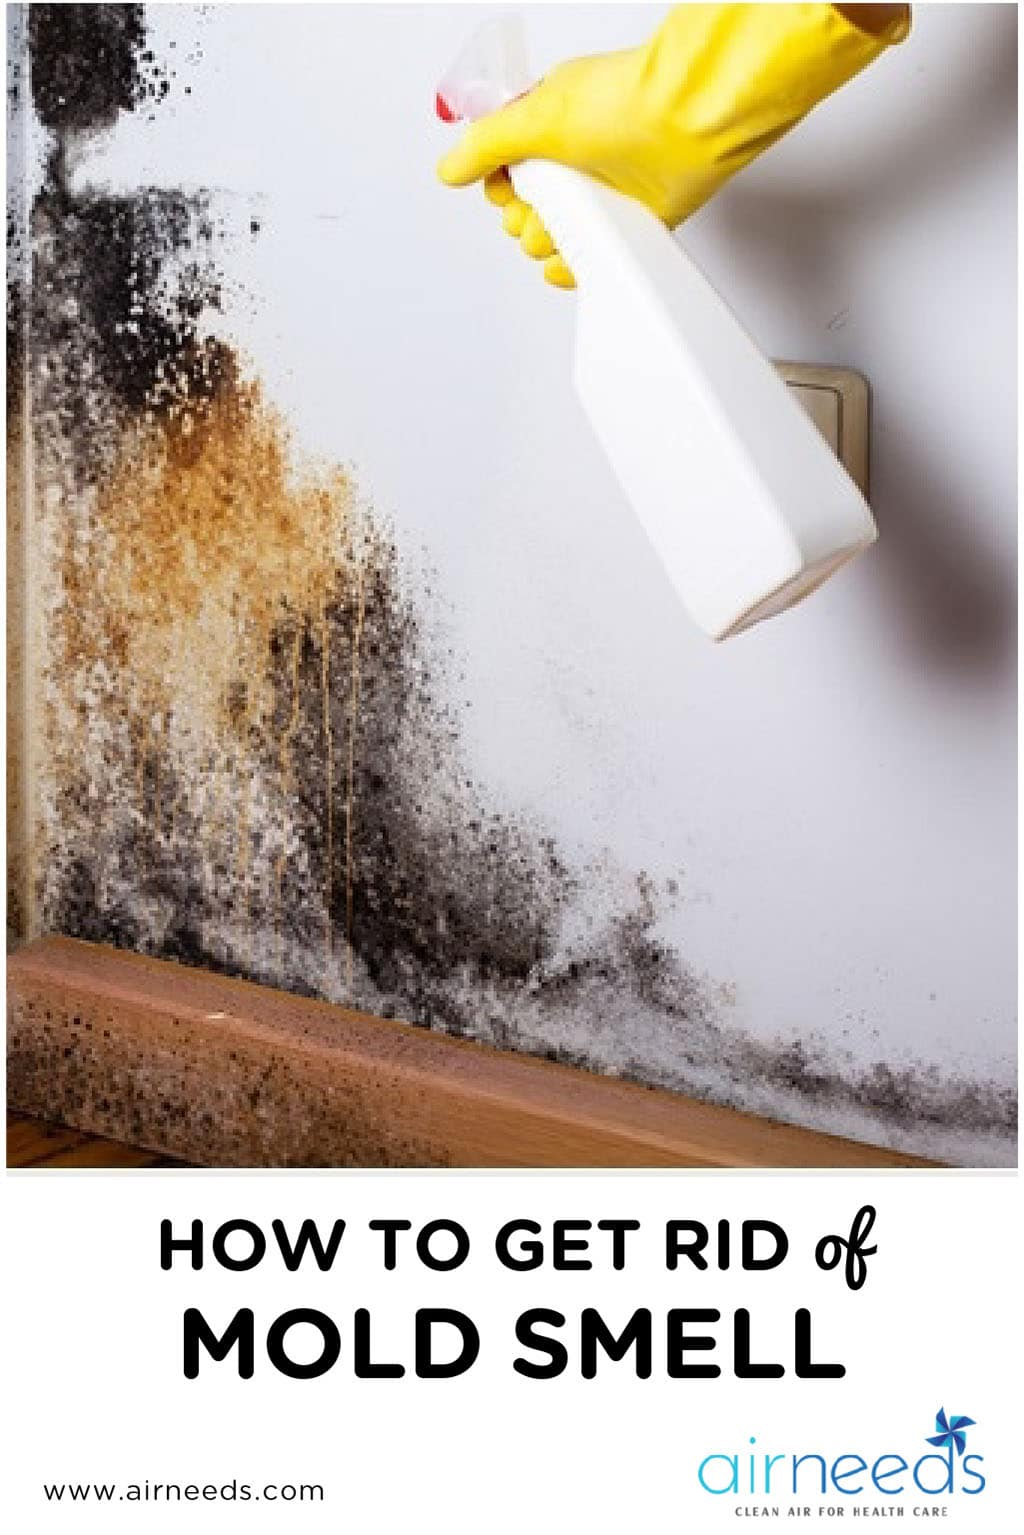 Best Way To Get Rid Of Black Mold In Bathroom 28 Images Best Way To Get Rid Of Mold In